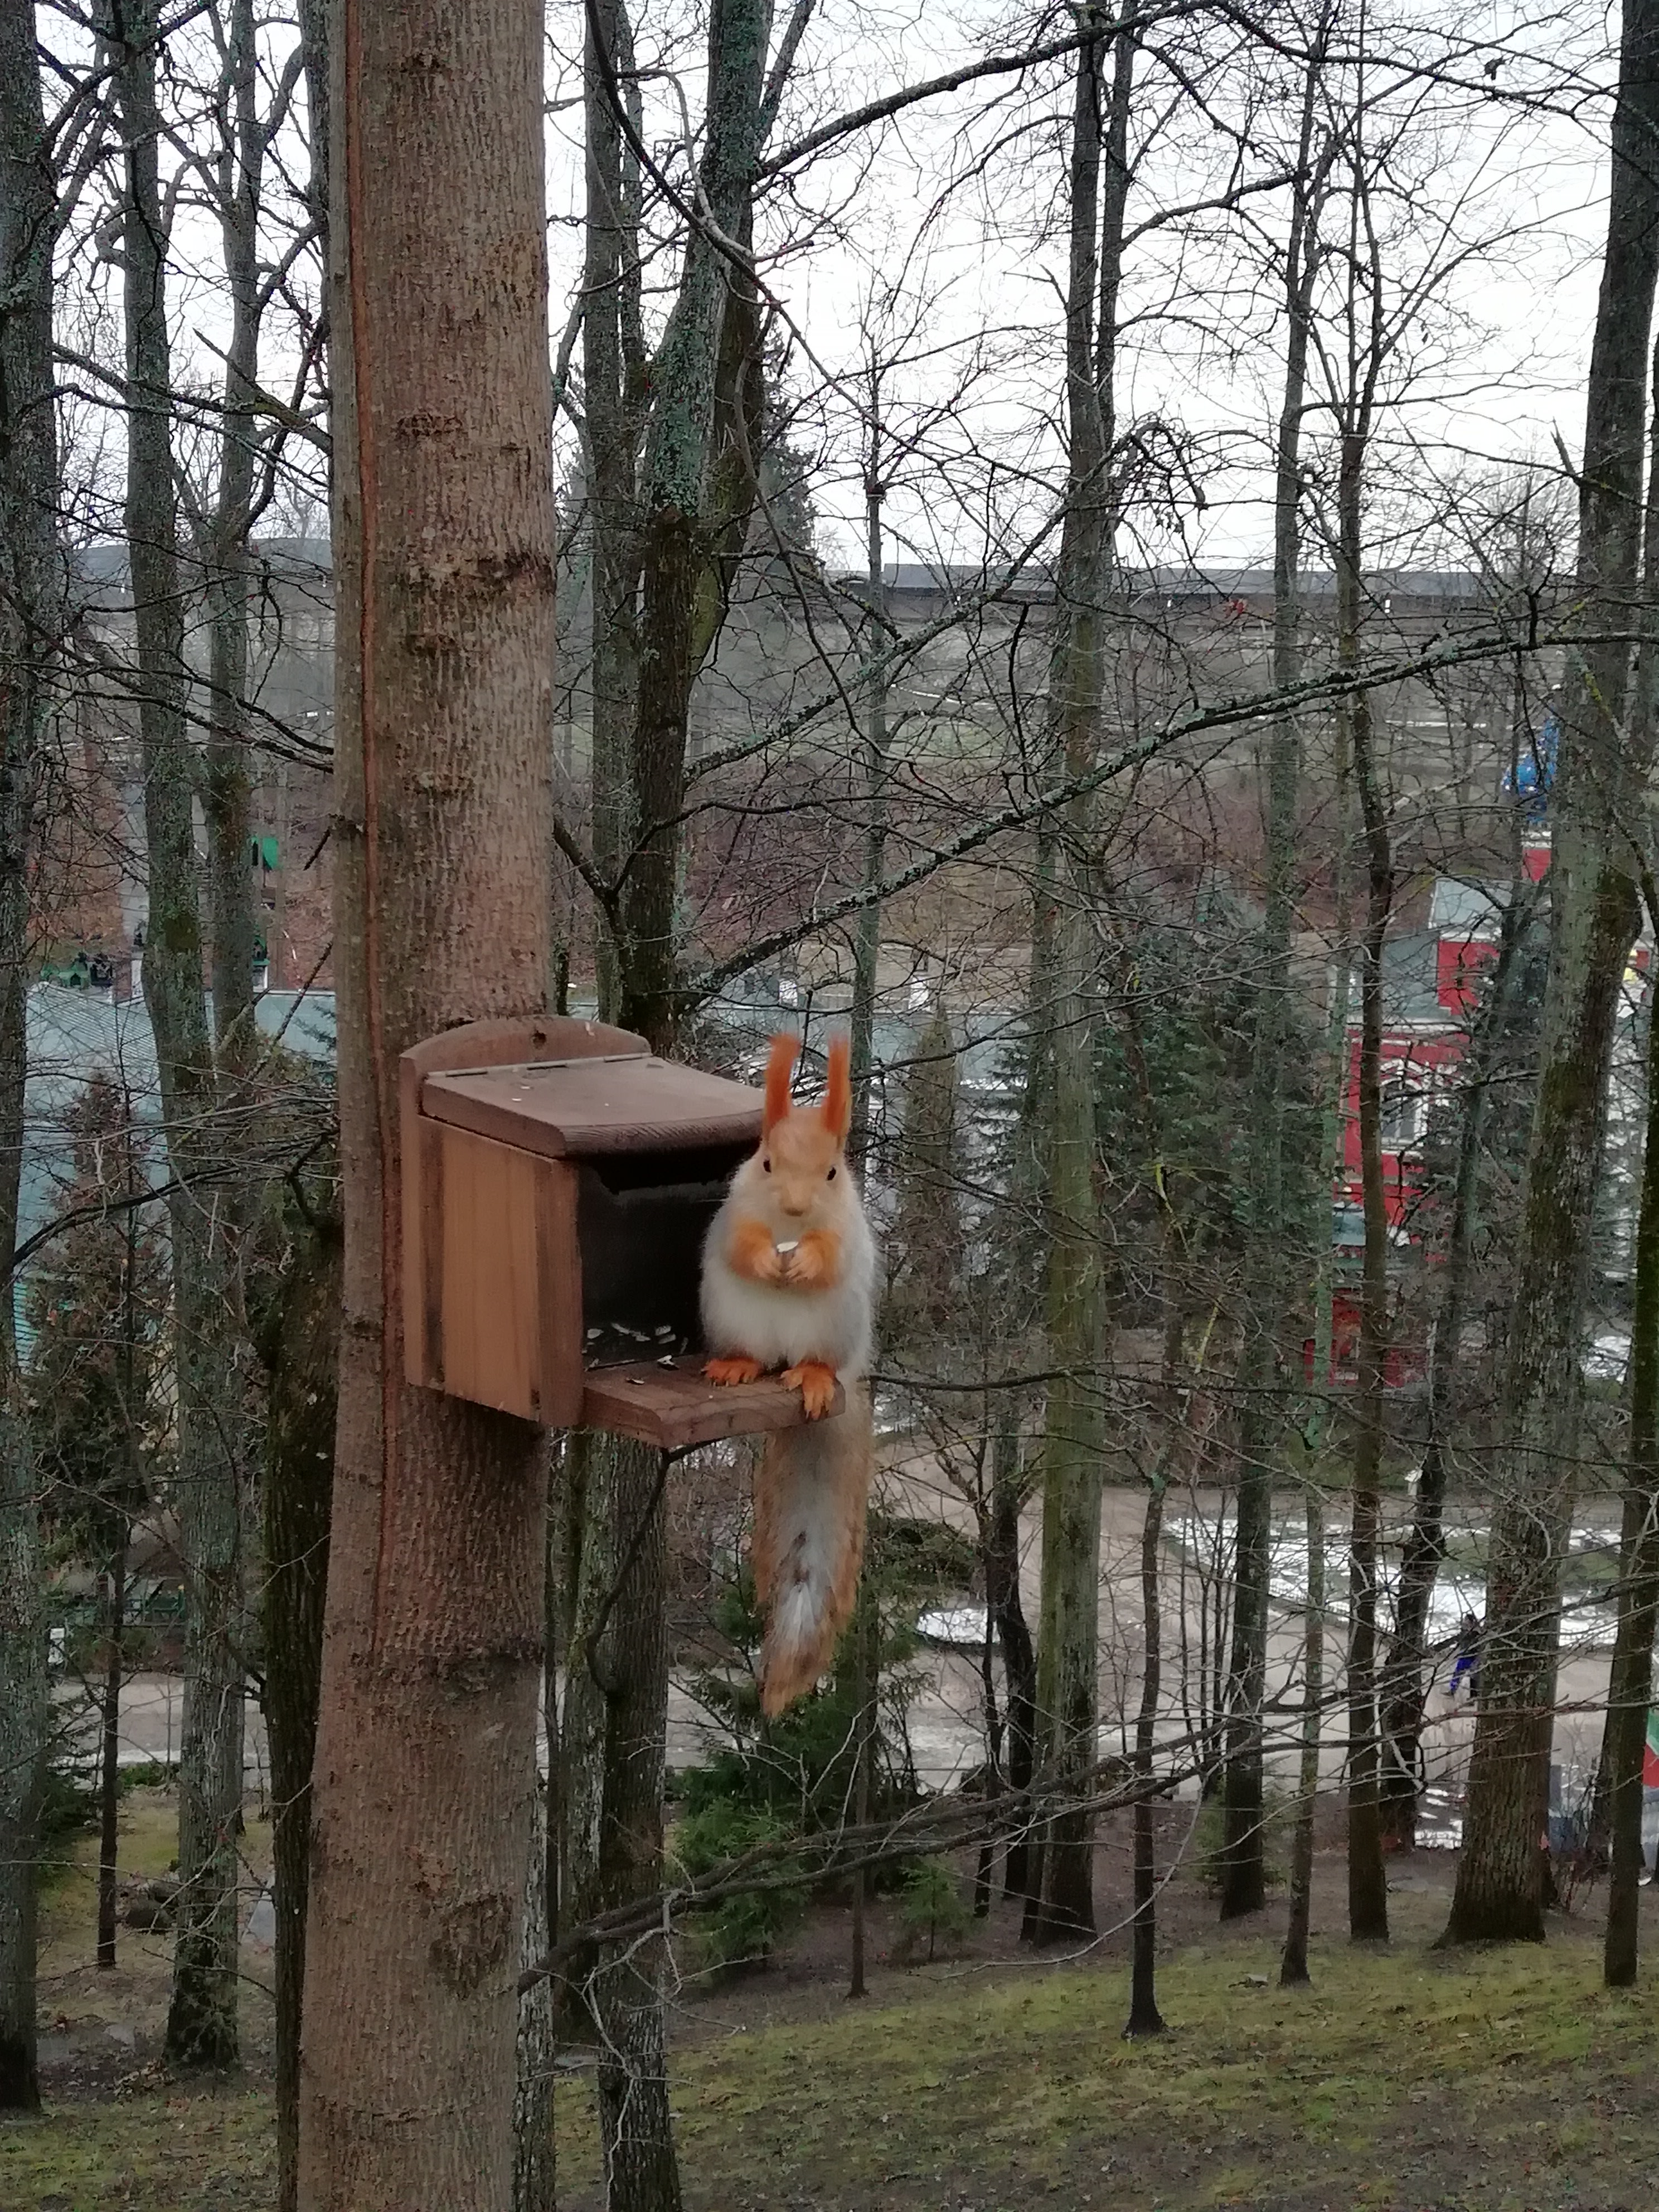 A squirrel in the Assumption monastery